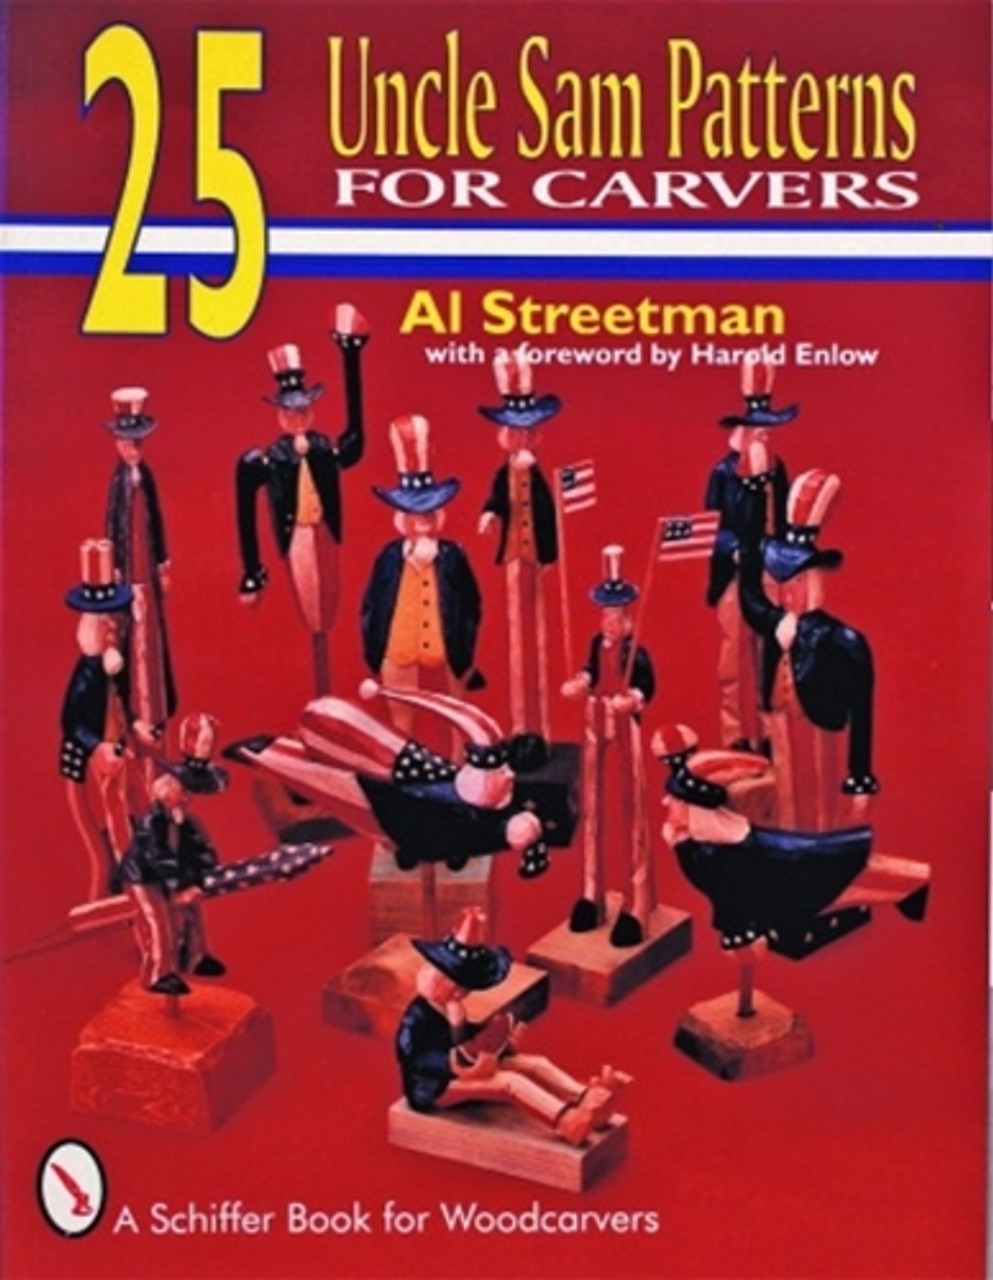 25 Uncle Sam Patterns for Carvers